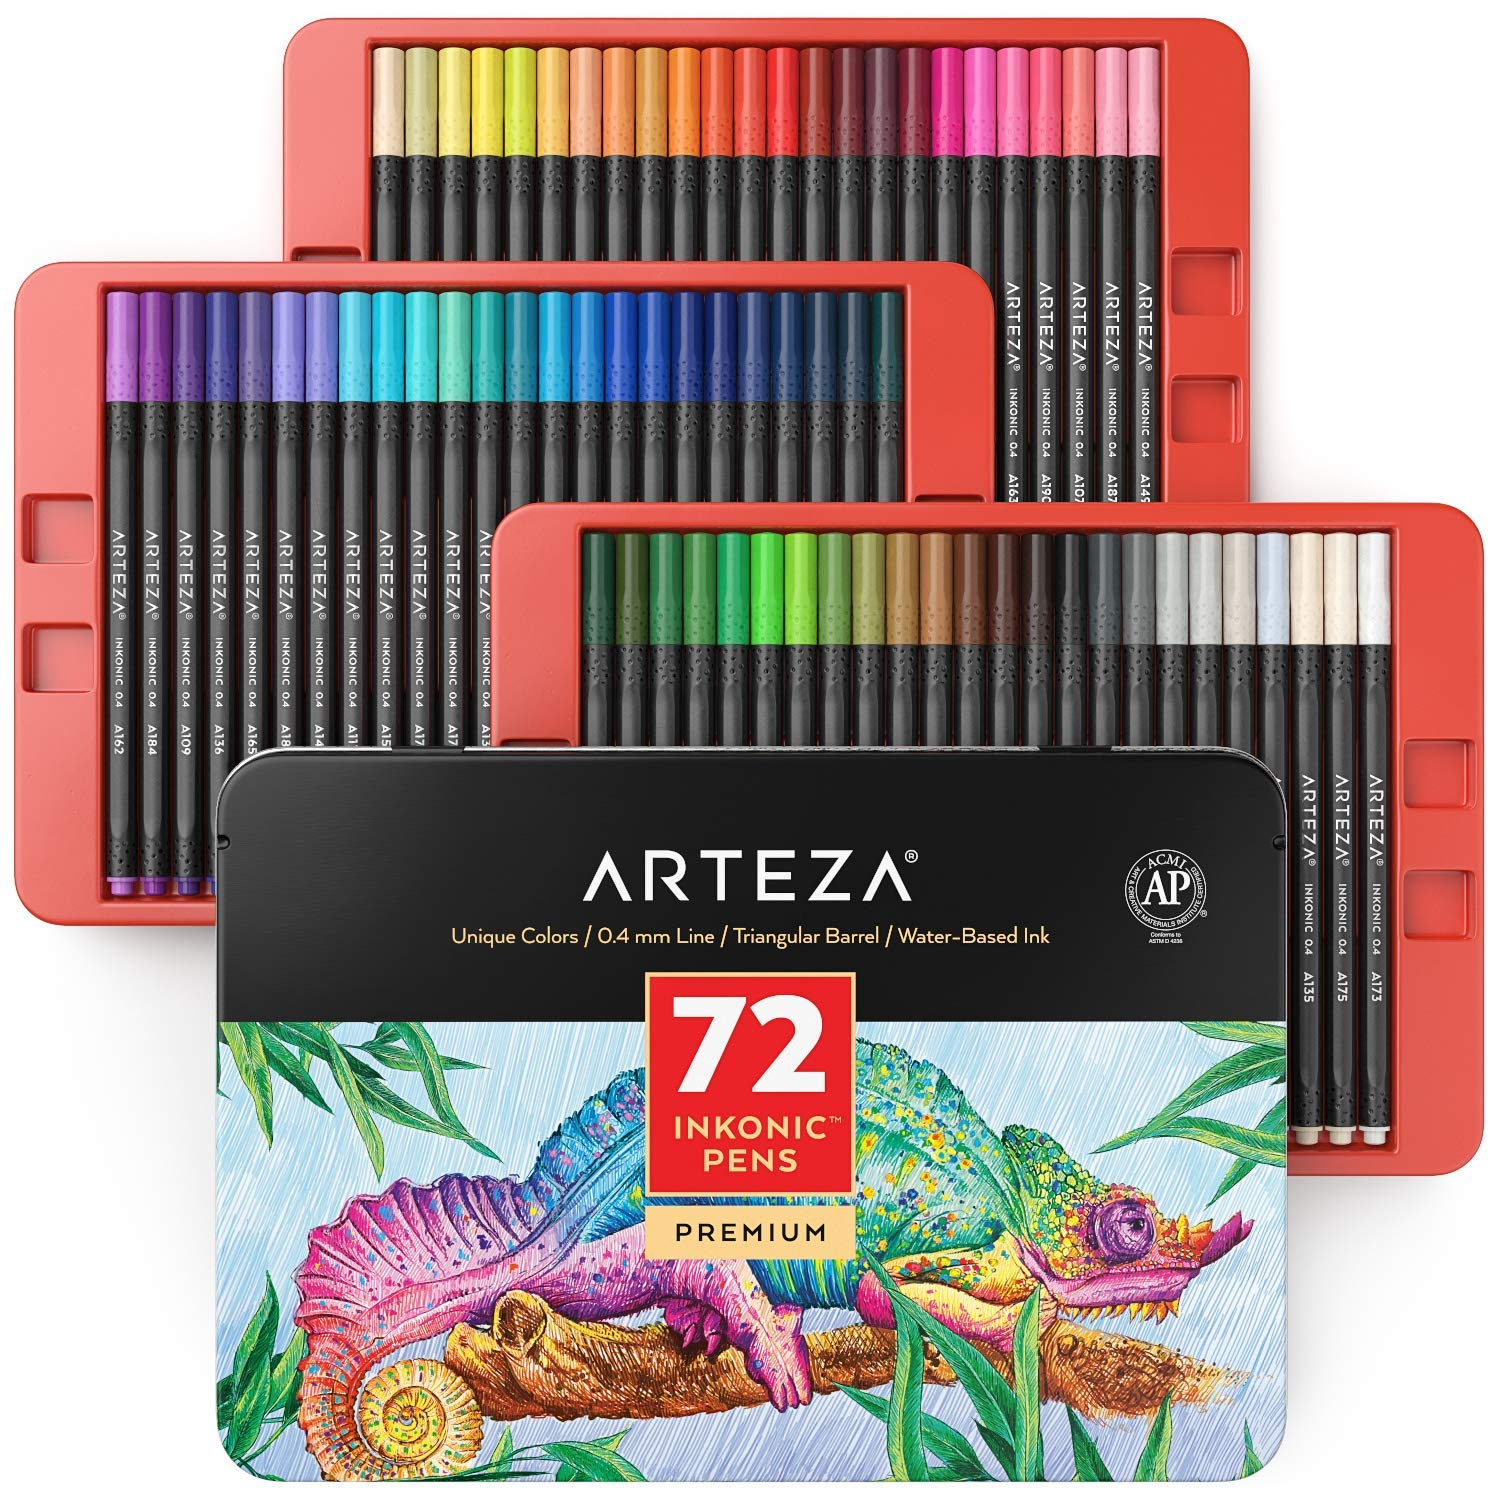 ARTEZA Inkonic Fineliners Fine Point Pens, Set of 72 Fine Tip Markers with Color Numbers, 0.4mm Tips, Ergonomic Barrels, Brilliant Assorted Colors for Coloring, Drawing & Detailing